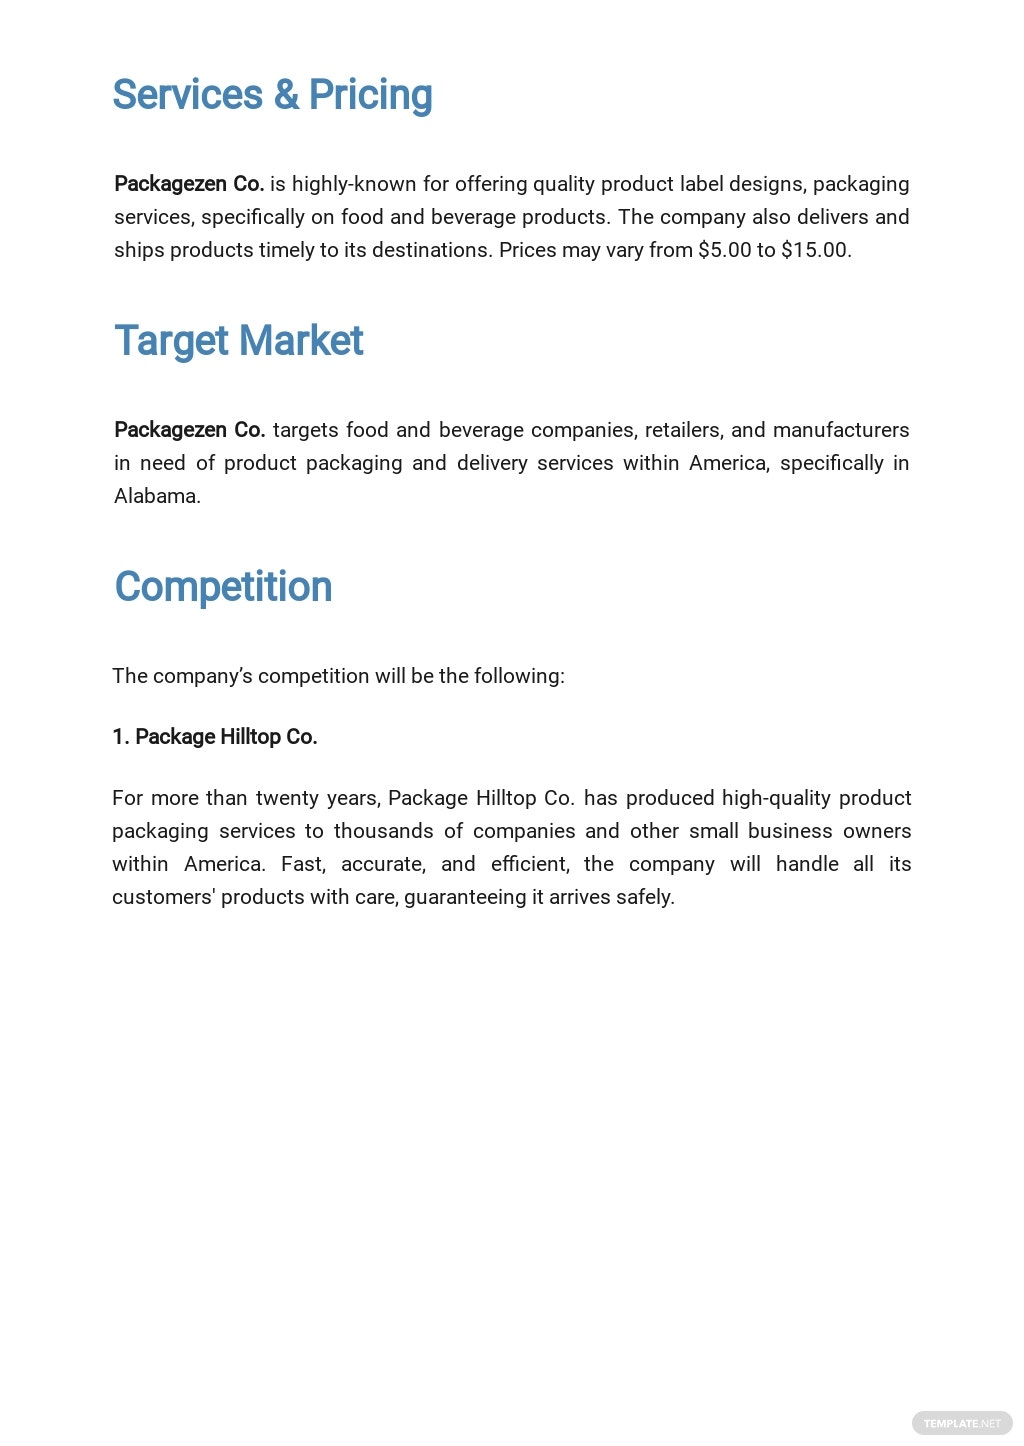 Packaging and Shipping Business Plan Template 2.jpe